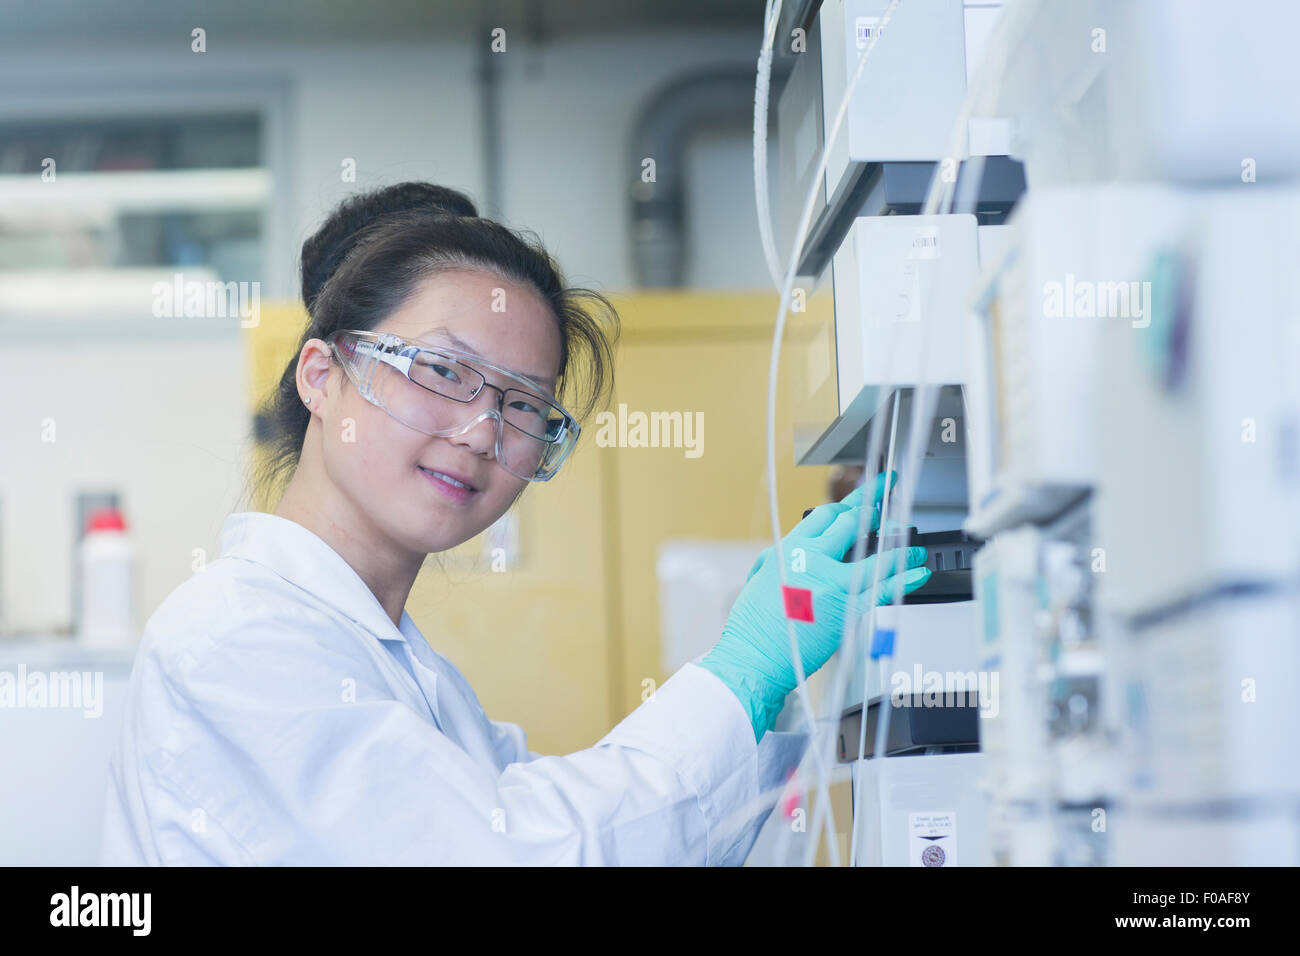 Portrait of young female scientist  using scientific equipment in lab - Stock Image